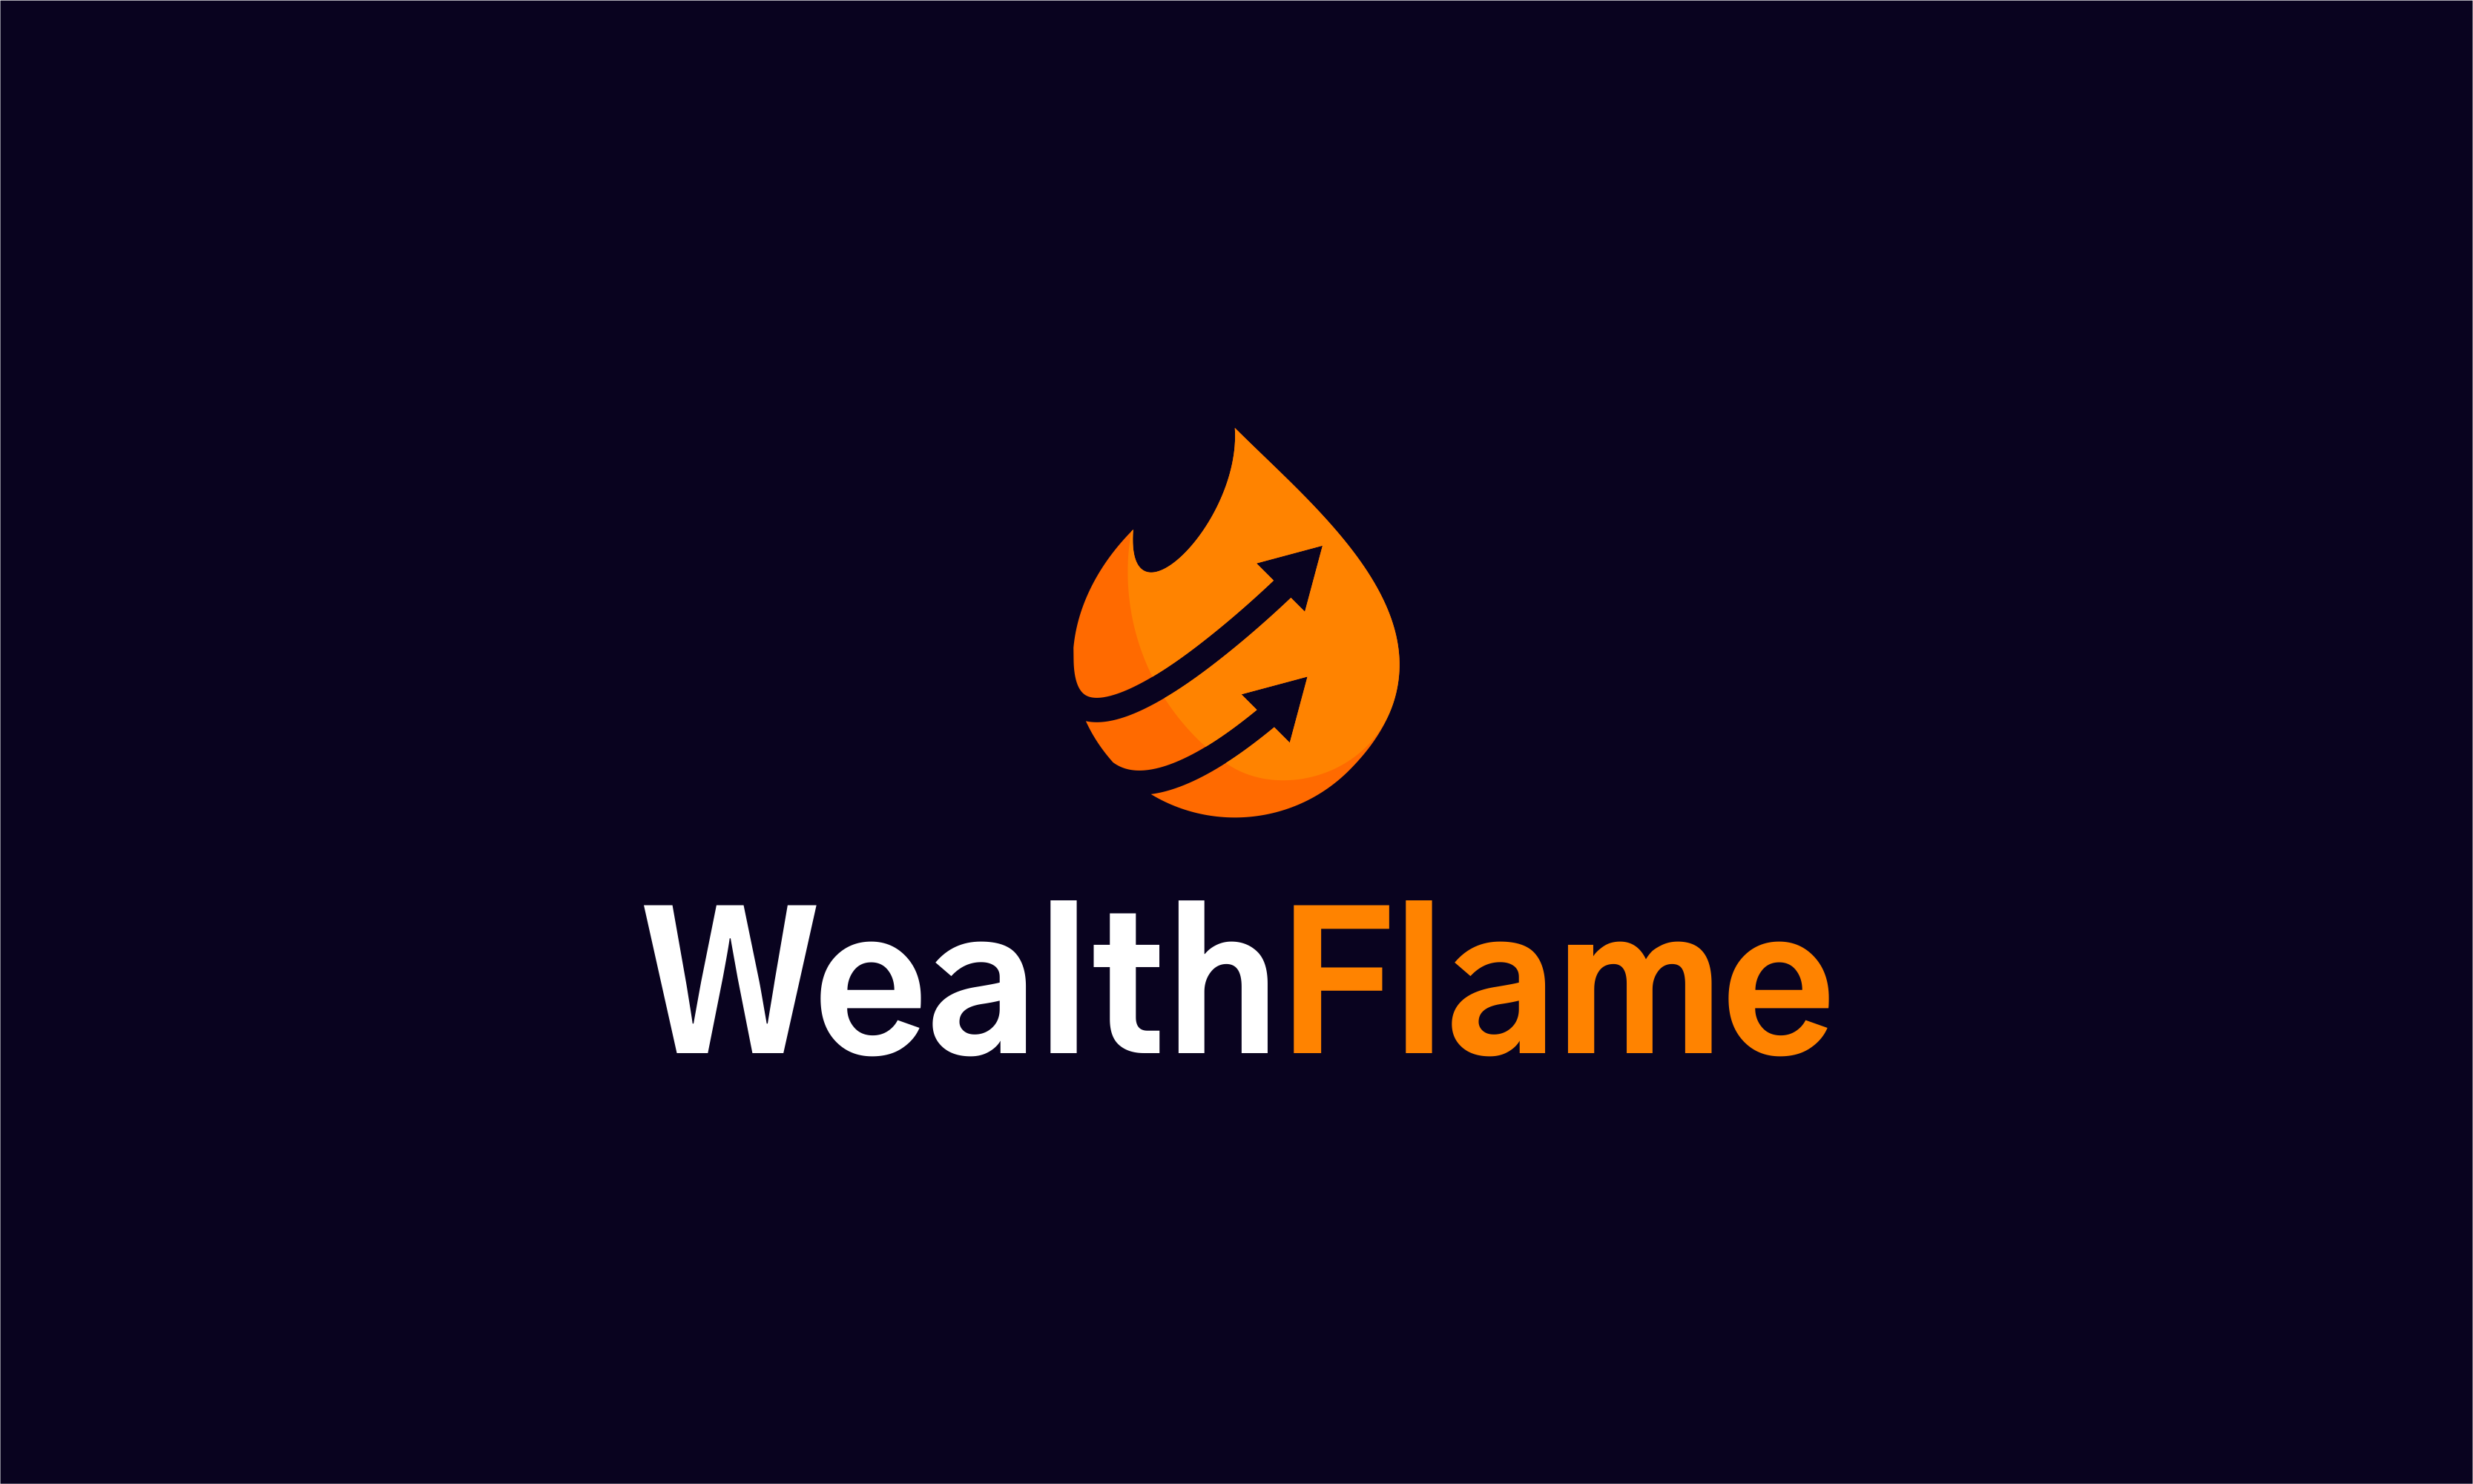 Wealthflame